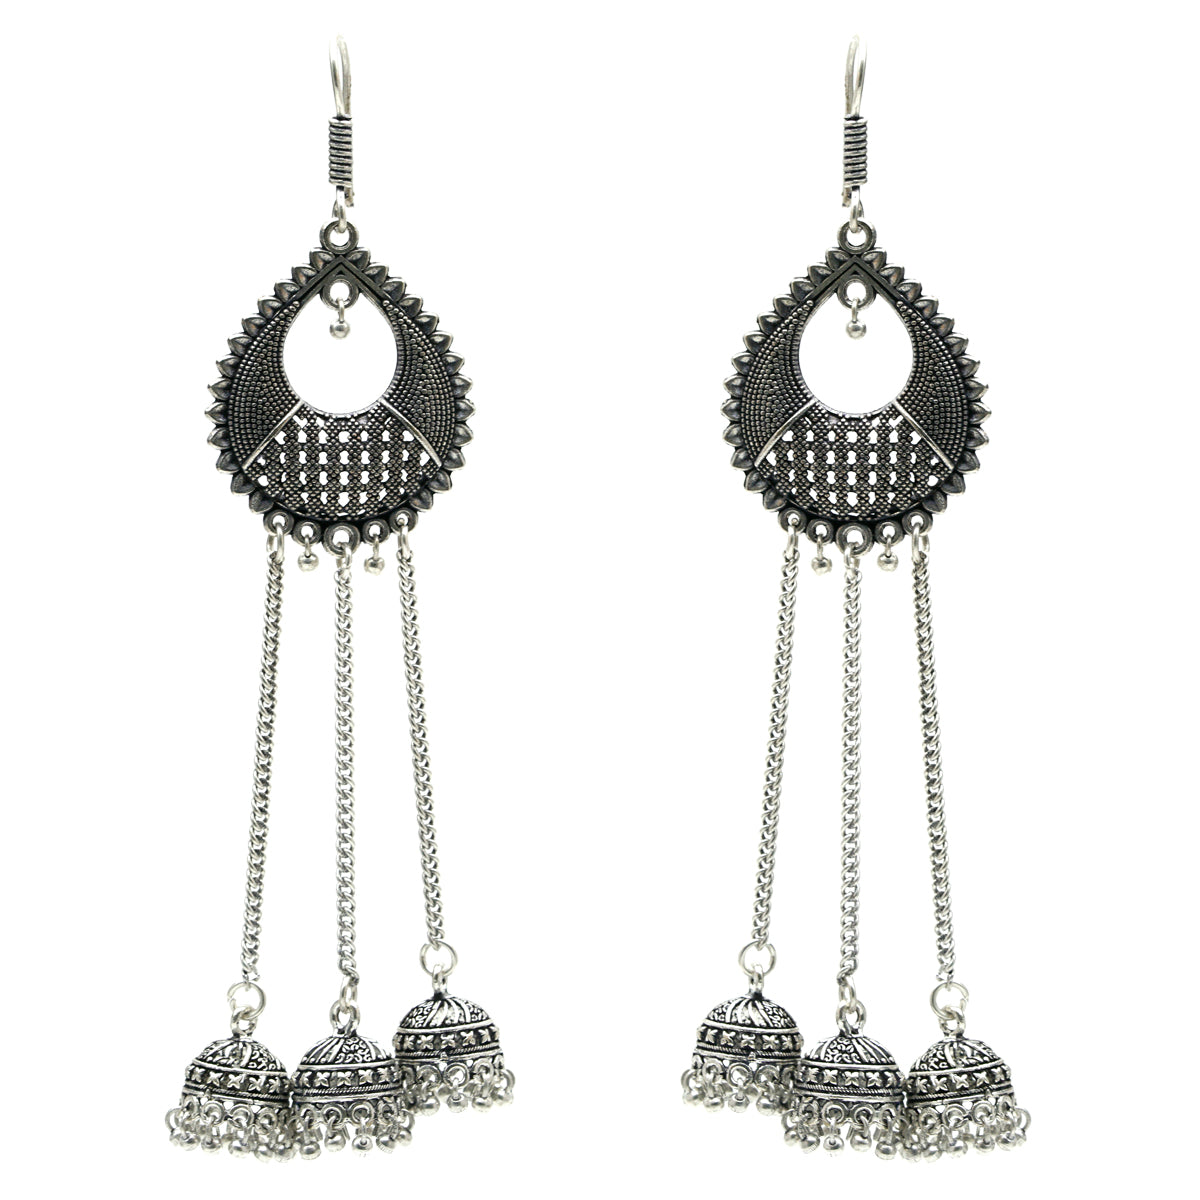 Oxidized Silver Long Jhumki Earrings - Kiyara